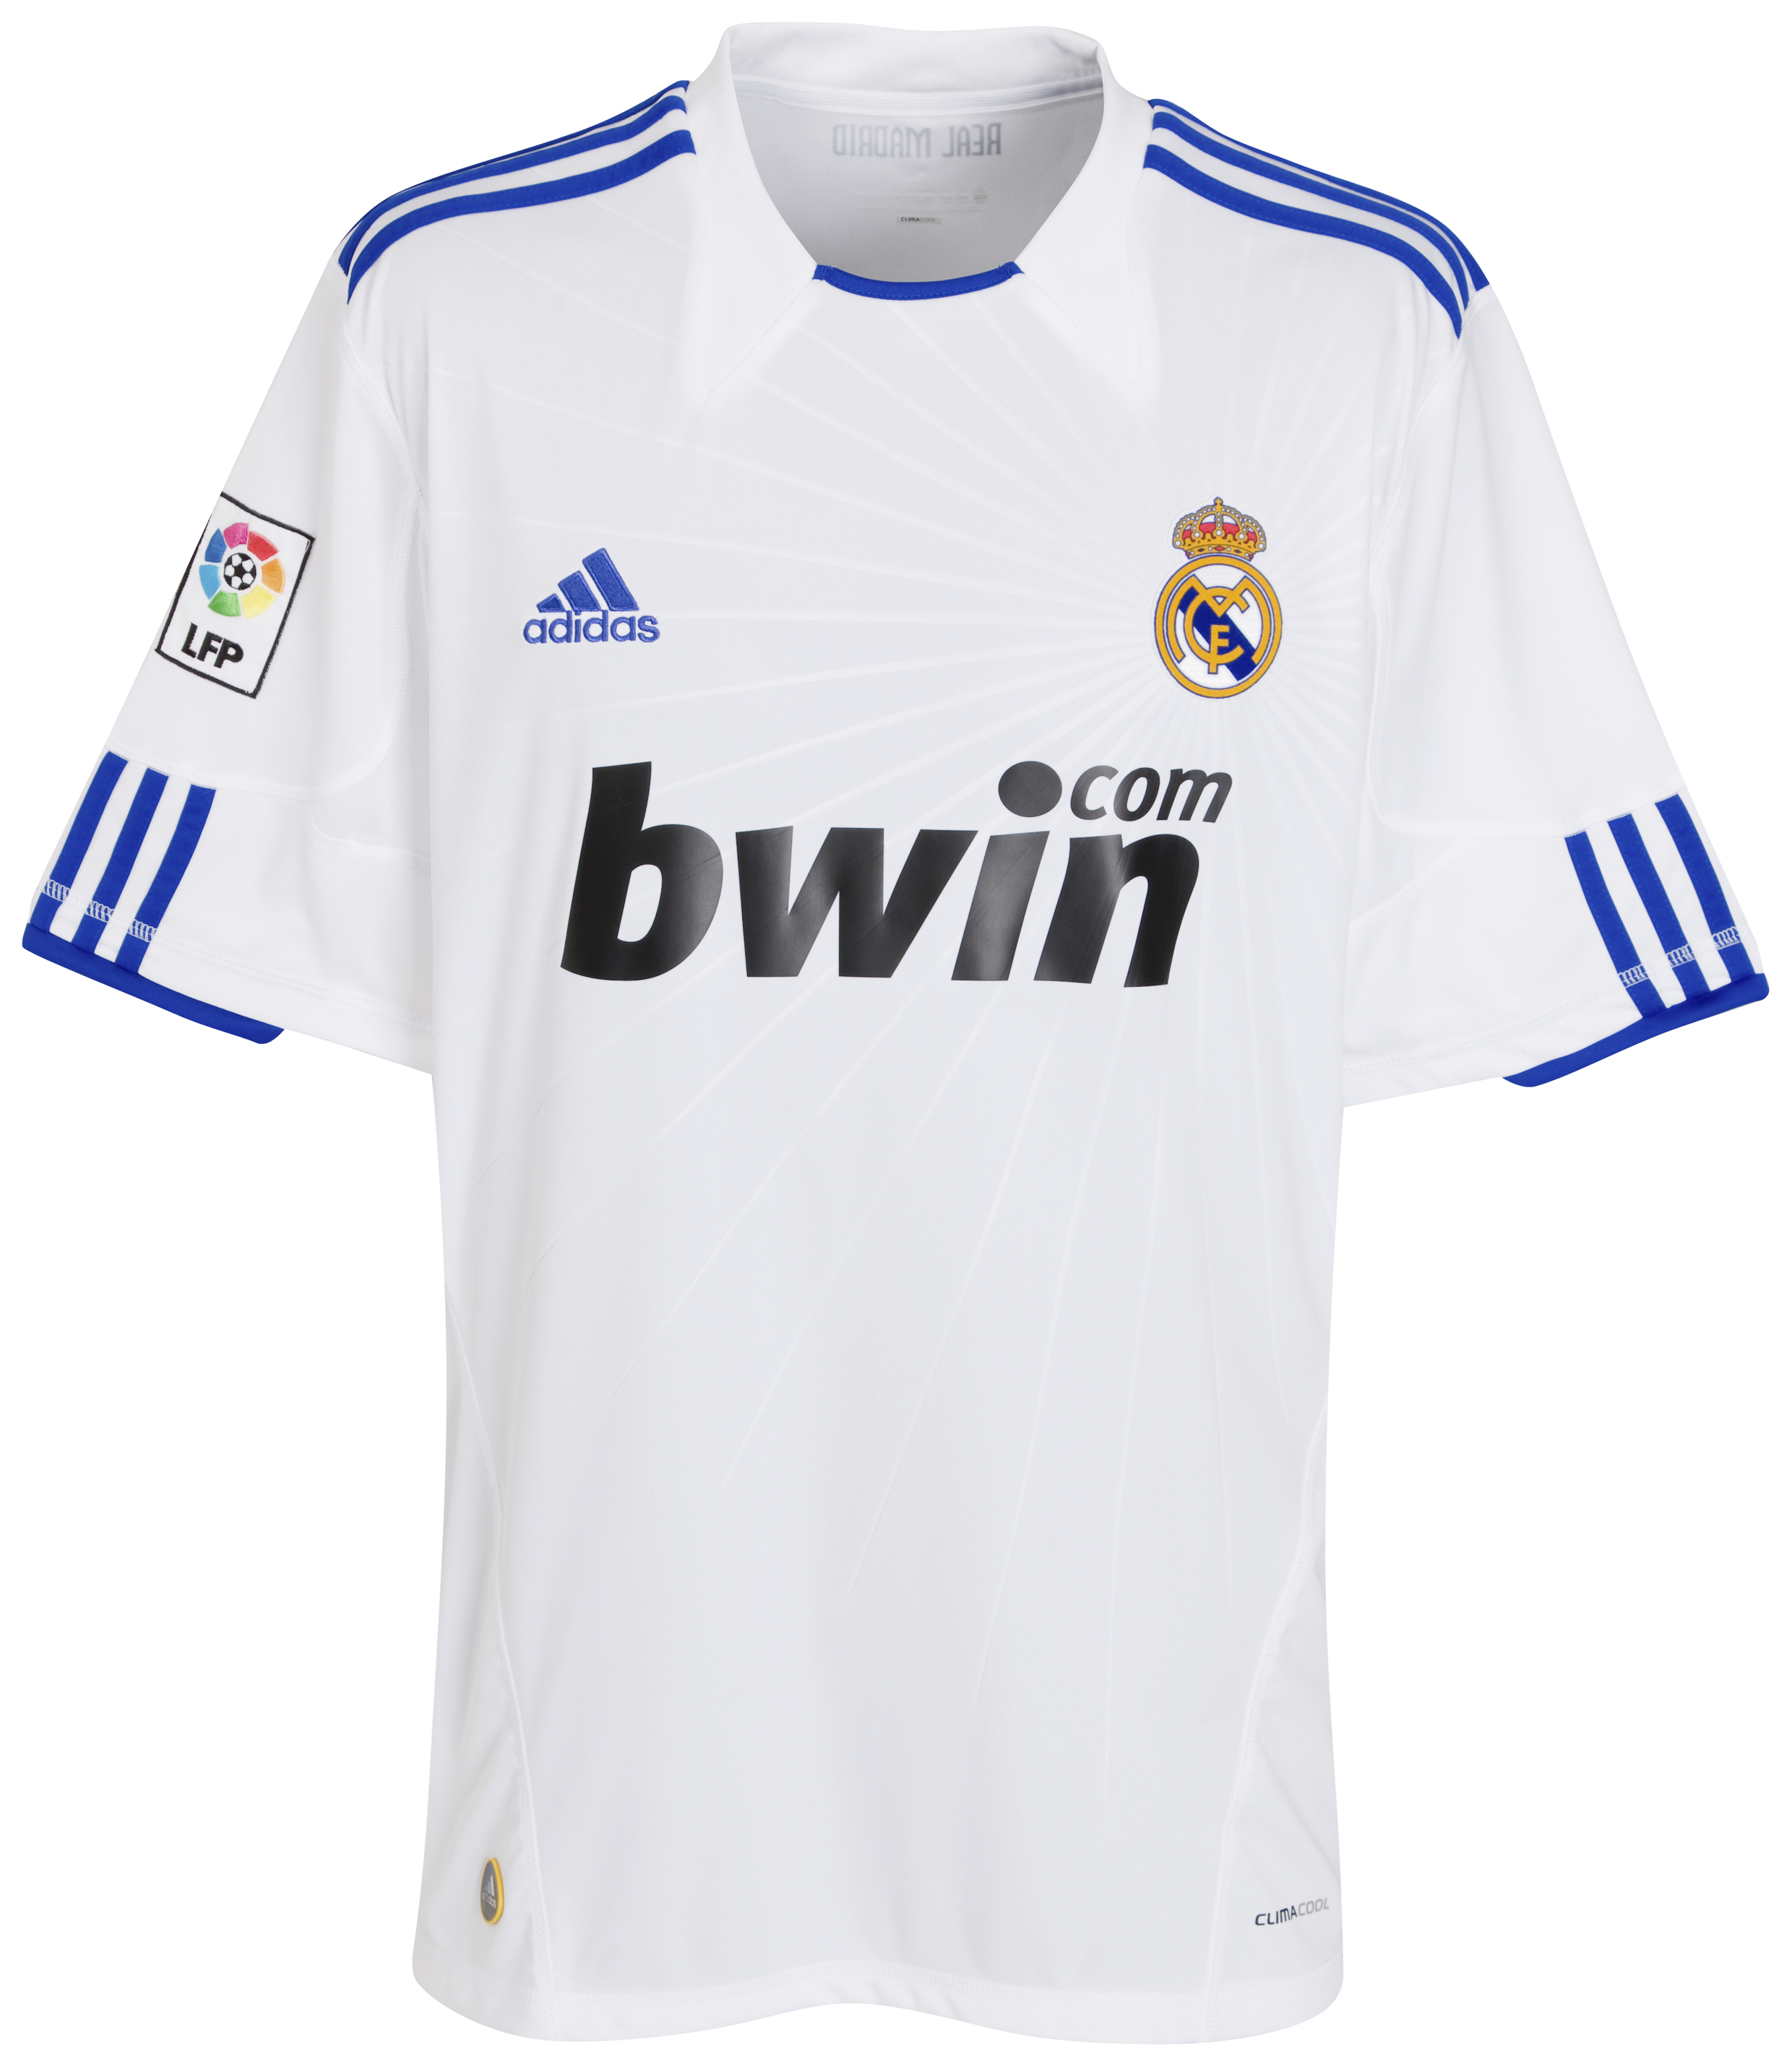 Real Madrid History and Current Players Rm-70330